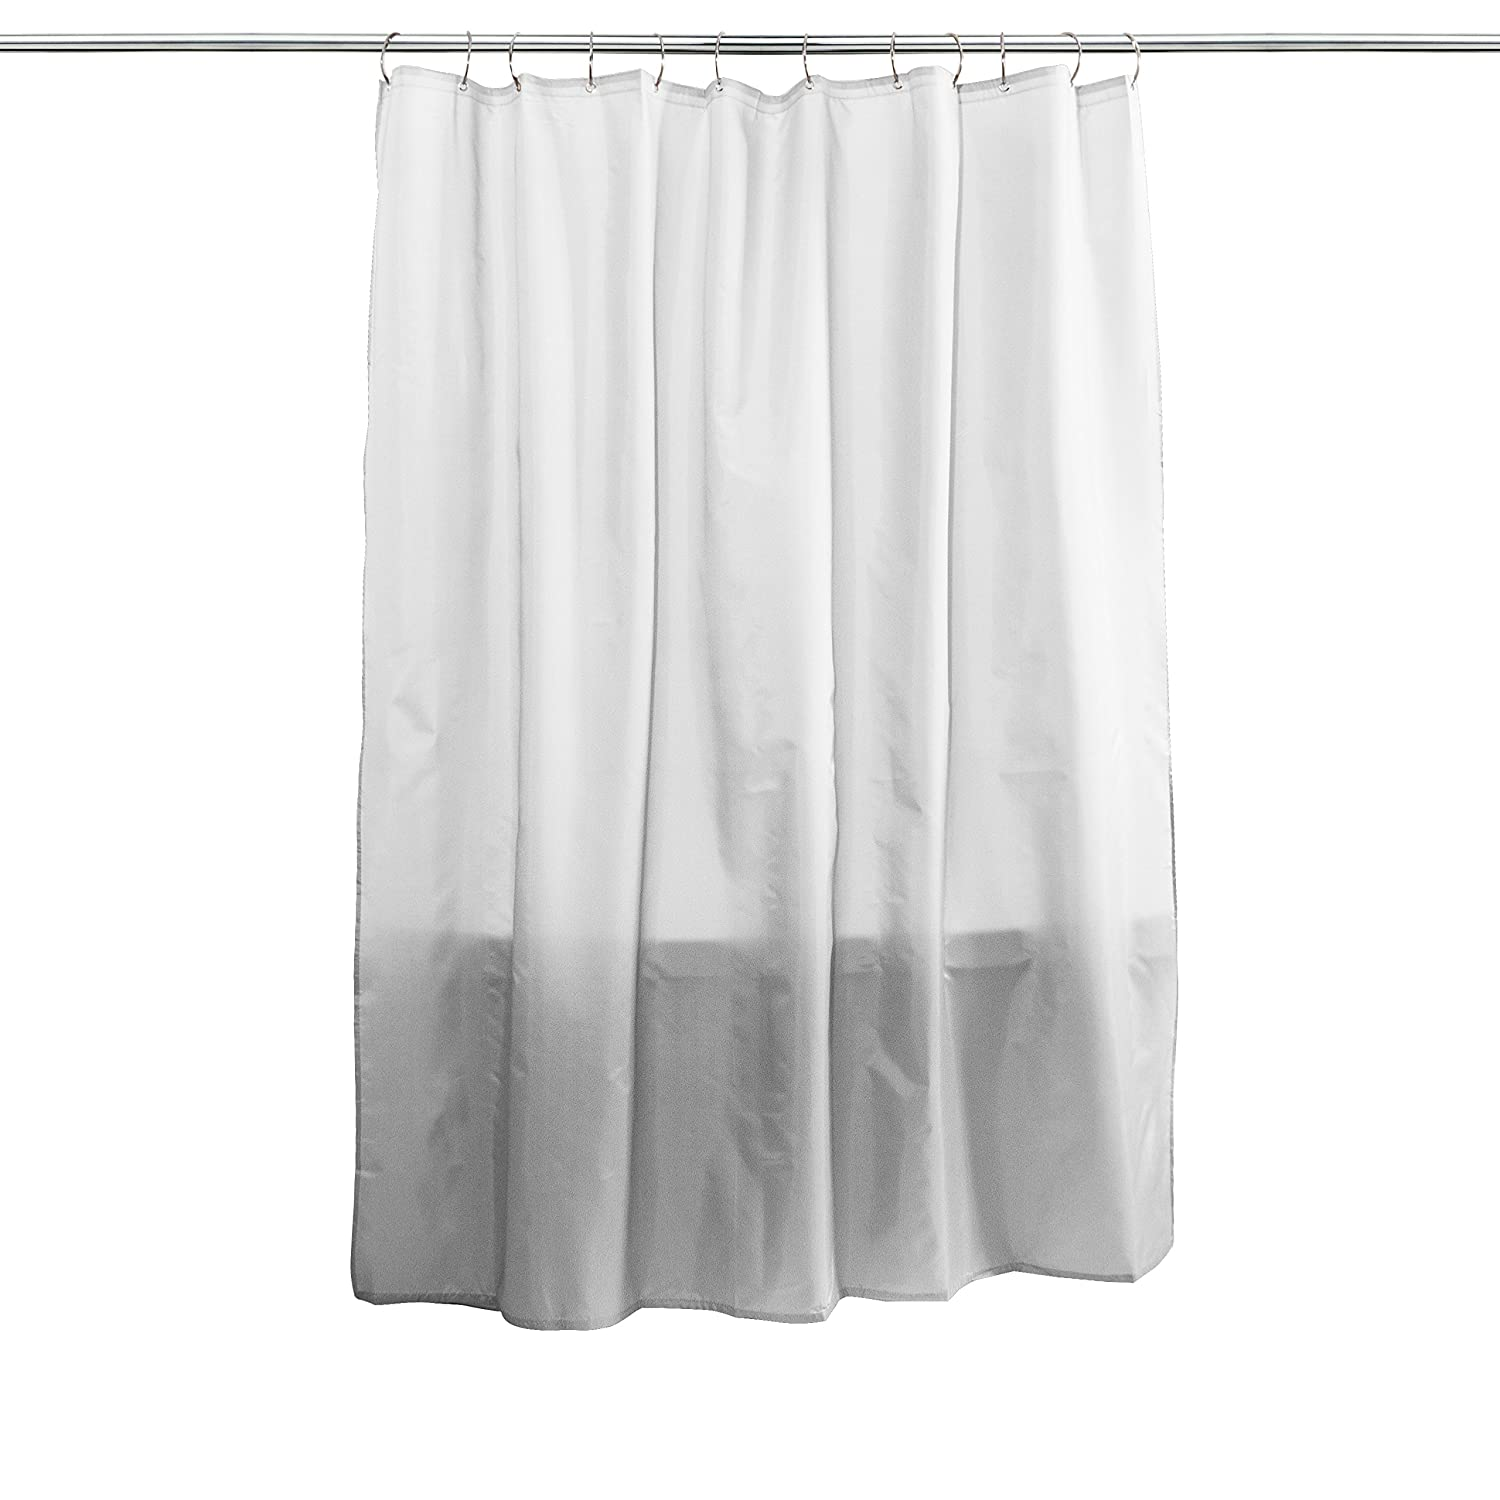 dp white decor home curtains com waffle inch by curtain amazon lush kitchen shower avery